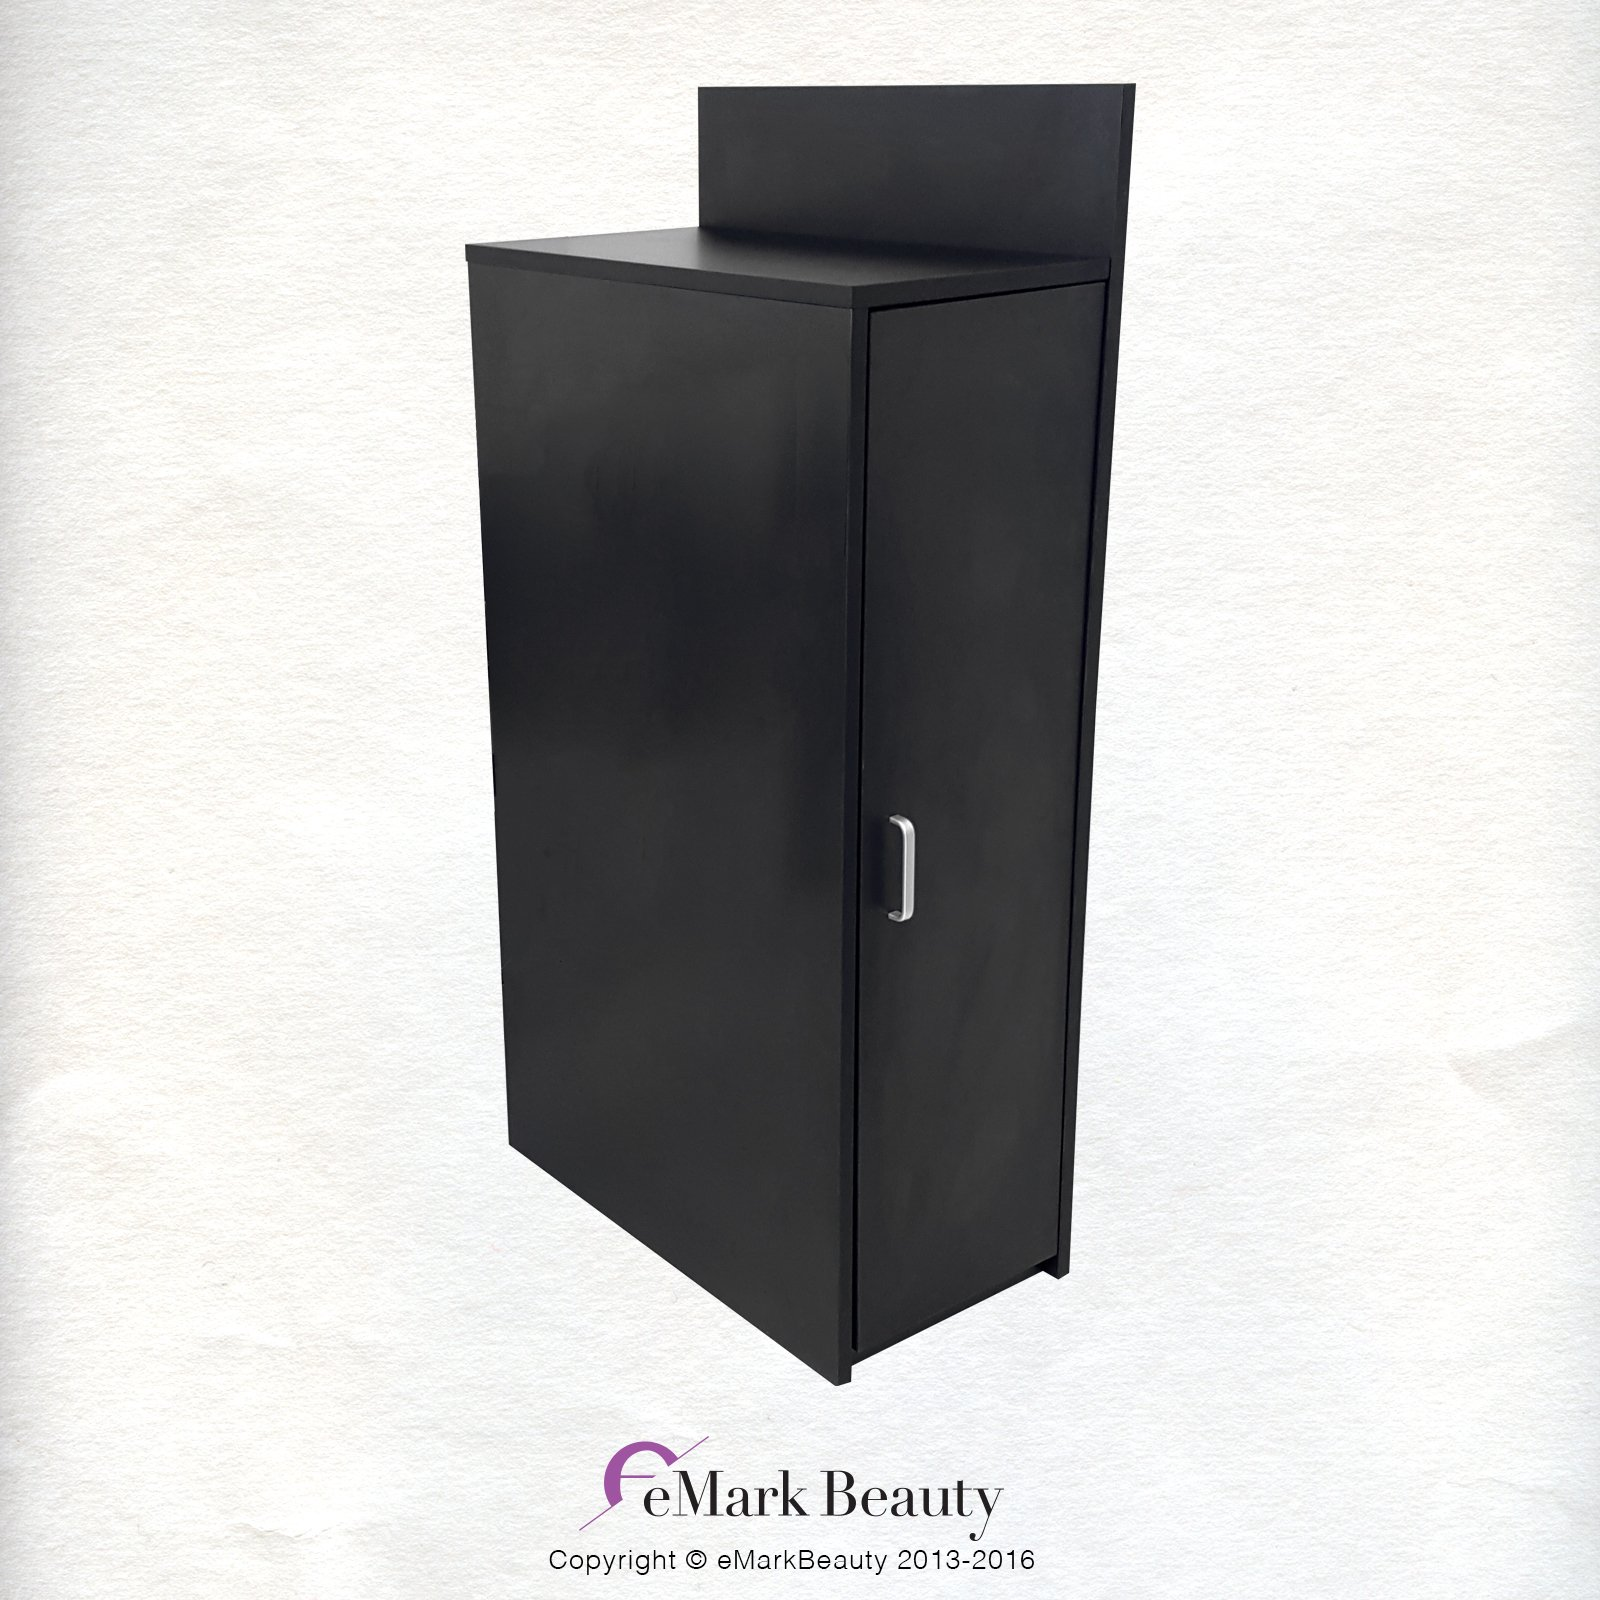 Beauty Salon Floor Cabinet WITH STORAGE in Black for Shampoo Bowls TLC-BC42 by eMark Beauty